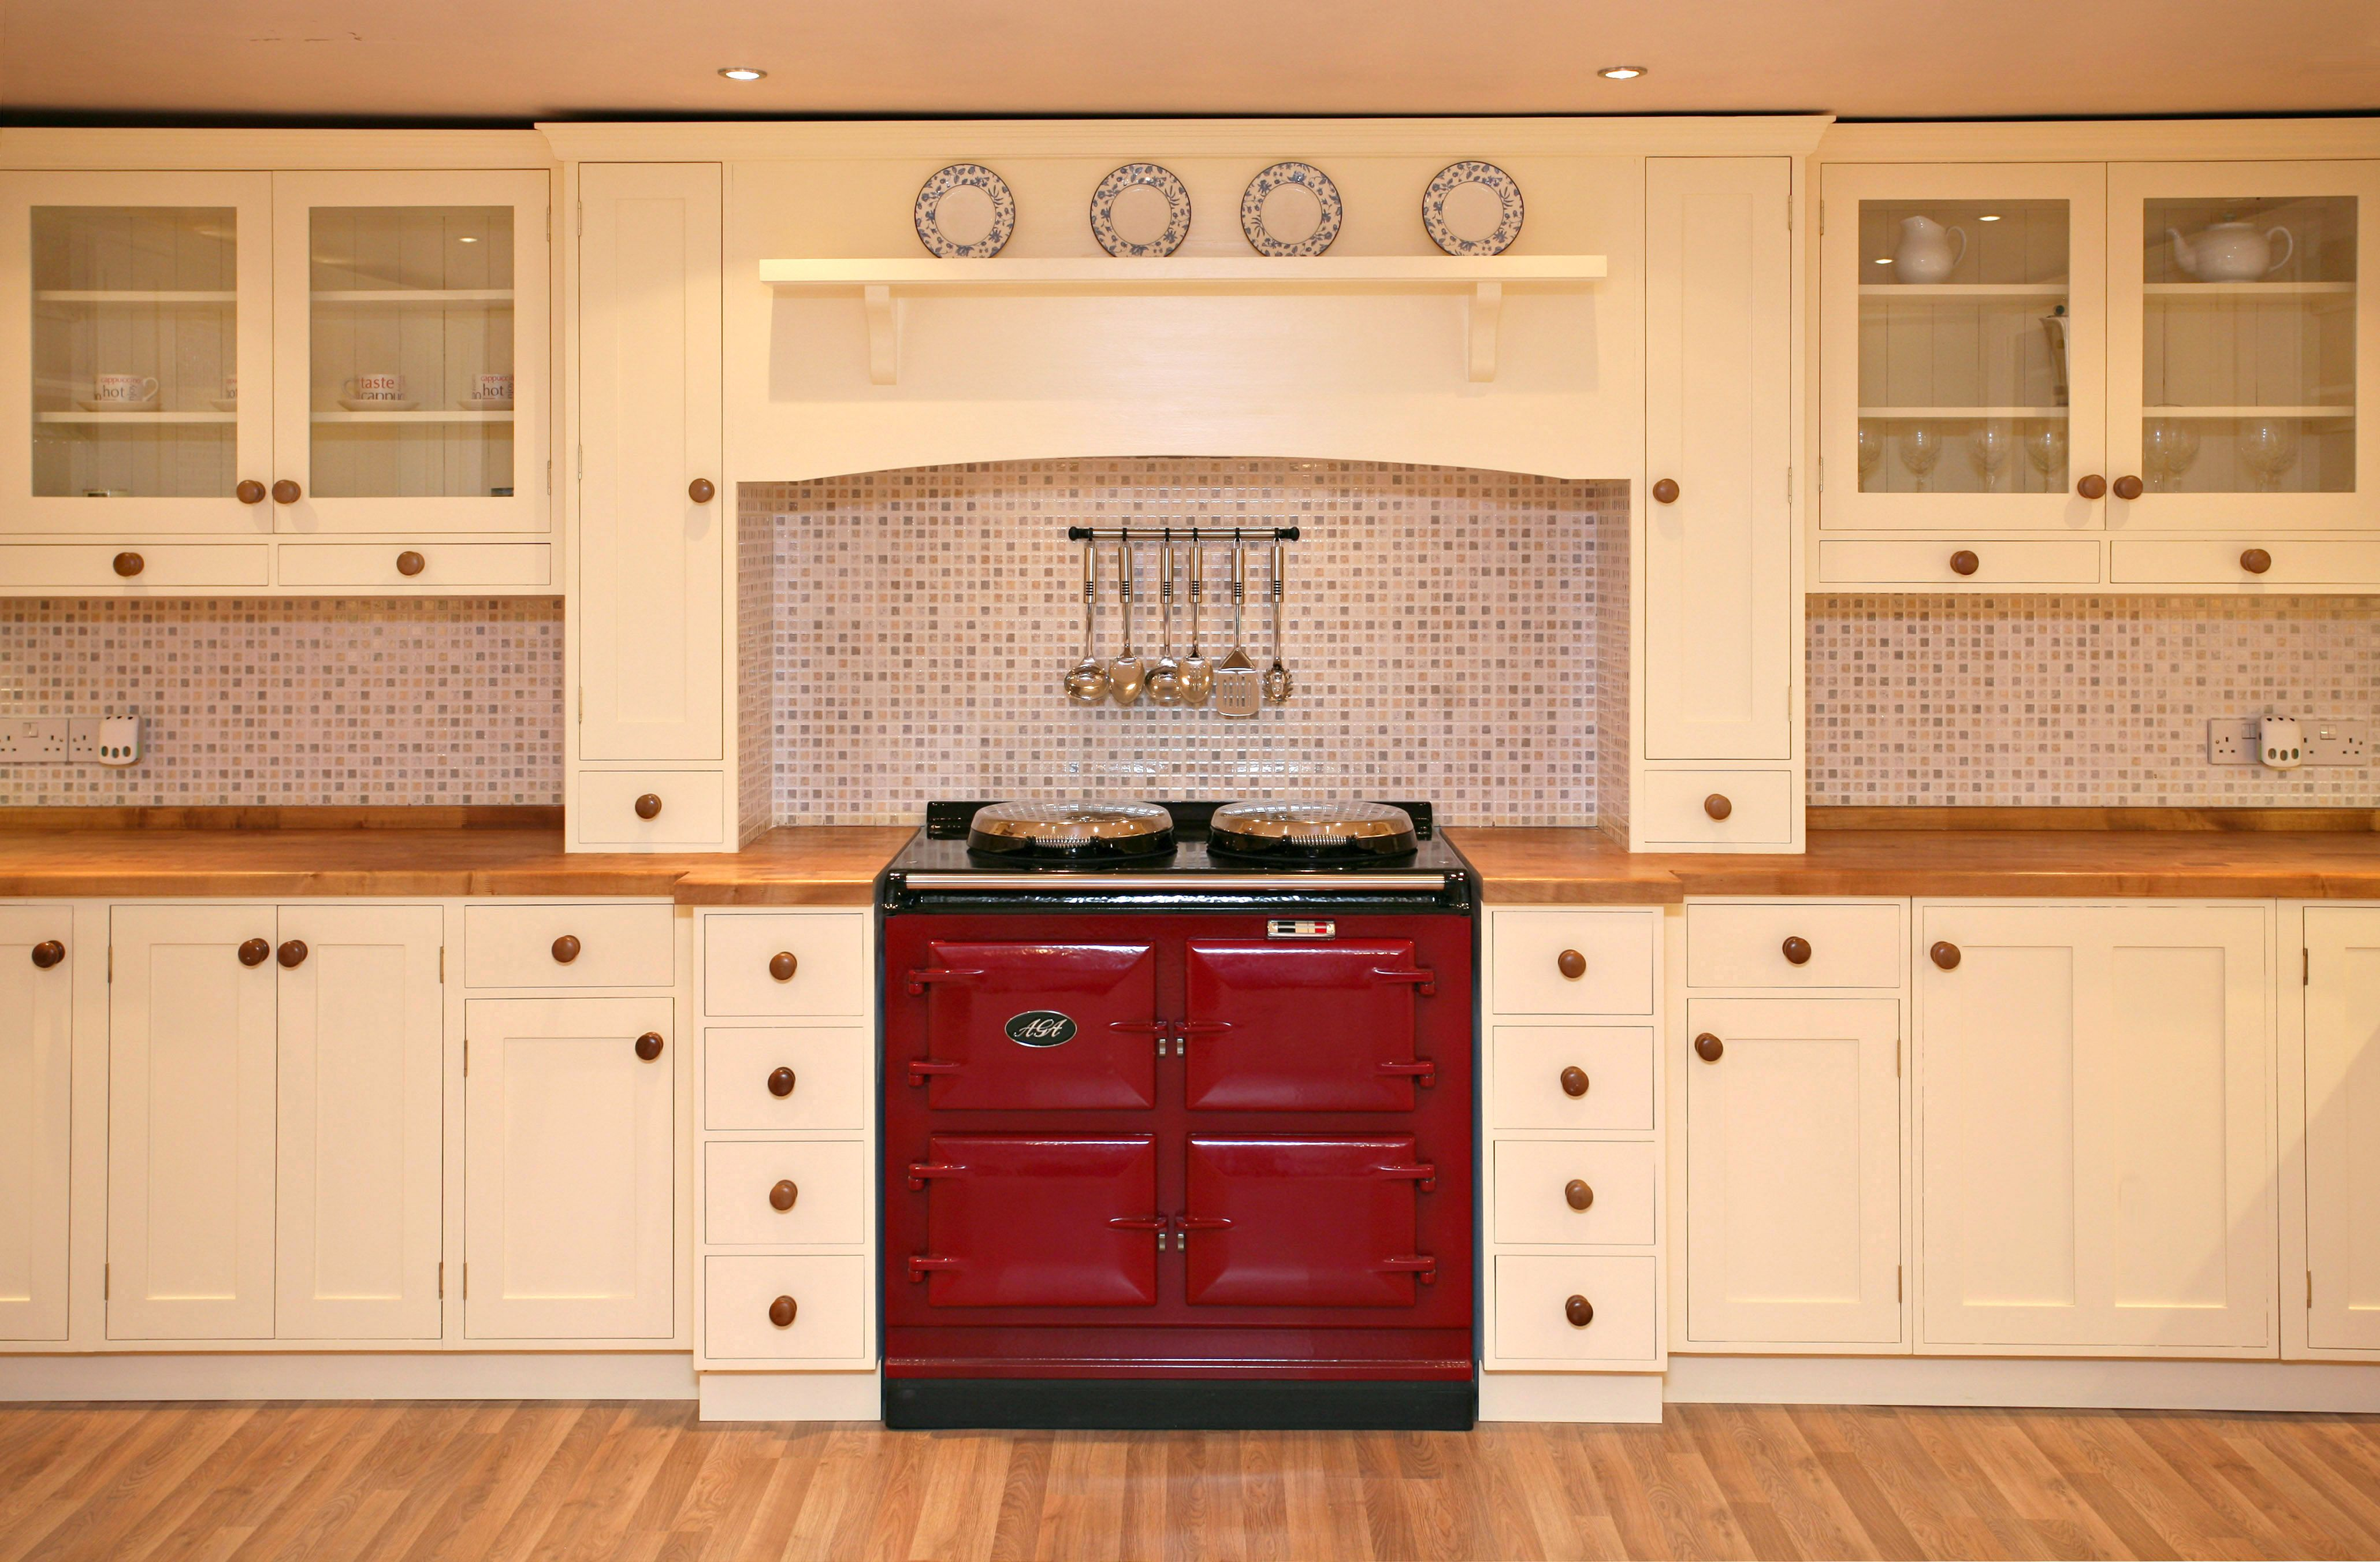 fitted kitchens our kitchens are made of solid wood throughout 4120x2704 images free kitchen design software fitted kitchens our kitchens are made of solid wood throughout      rh   pinterest co uk